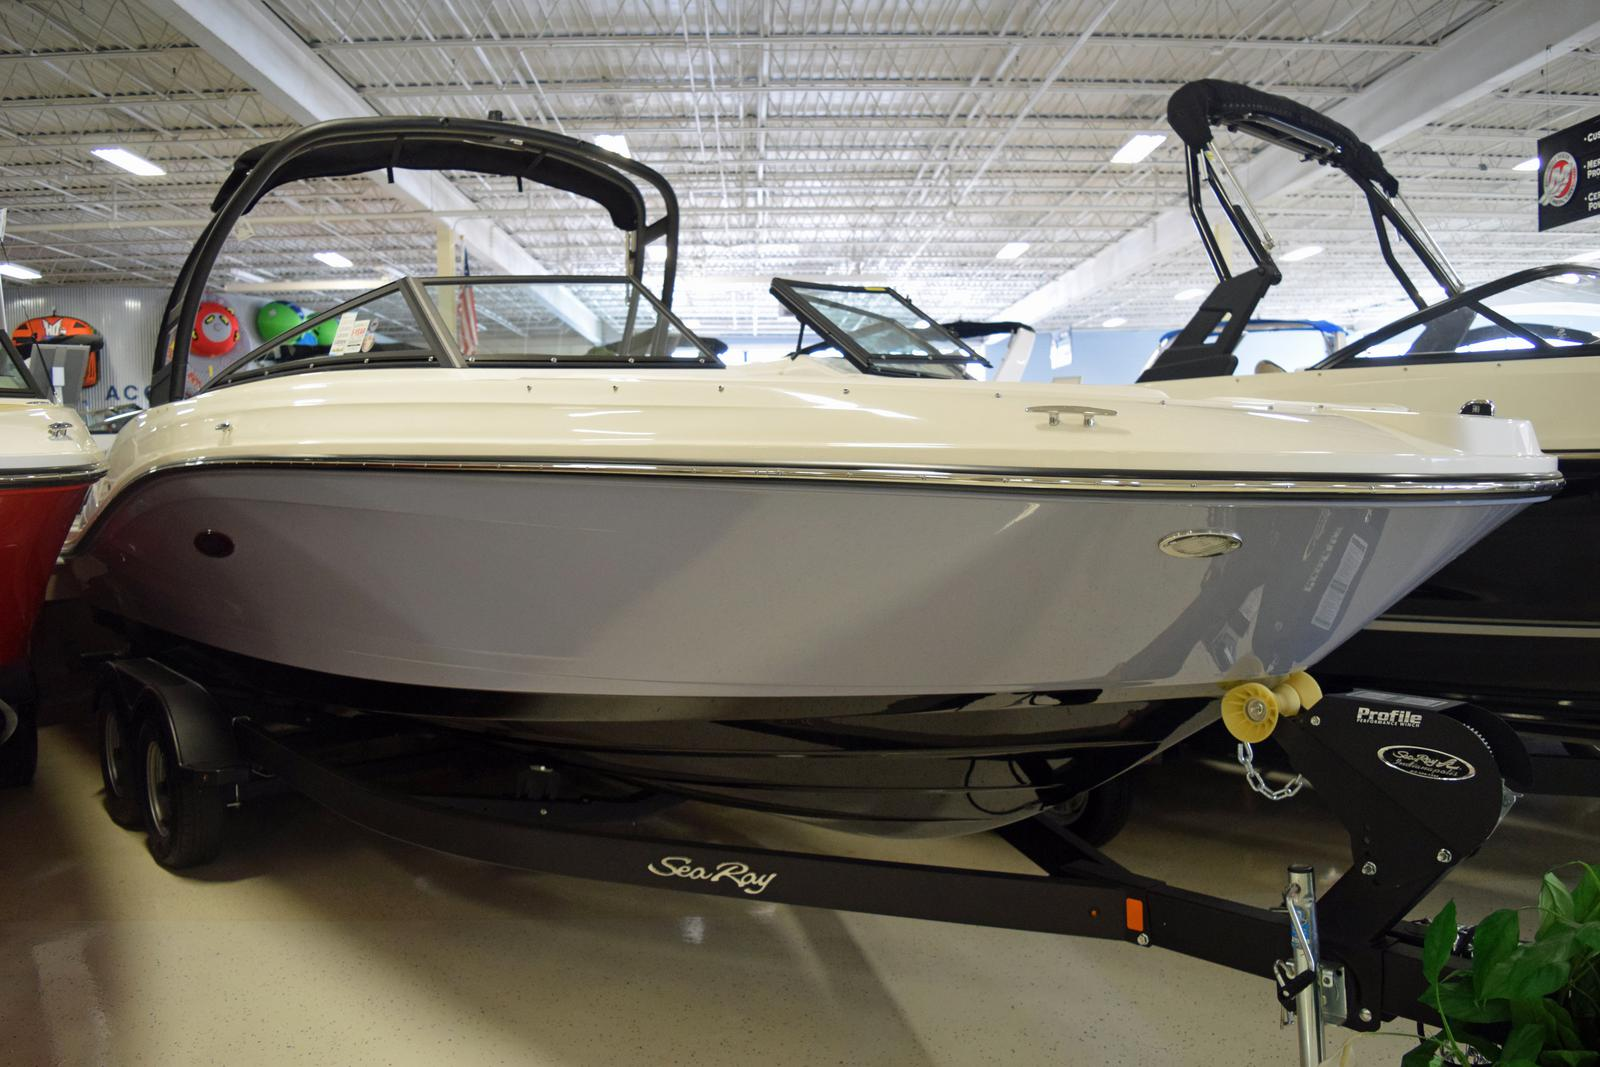 Inventory from Sea Ray Marine Center of Indiana Indianapolis